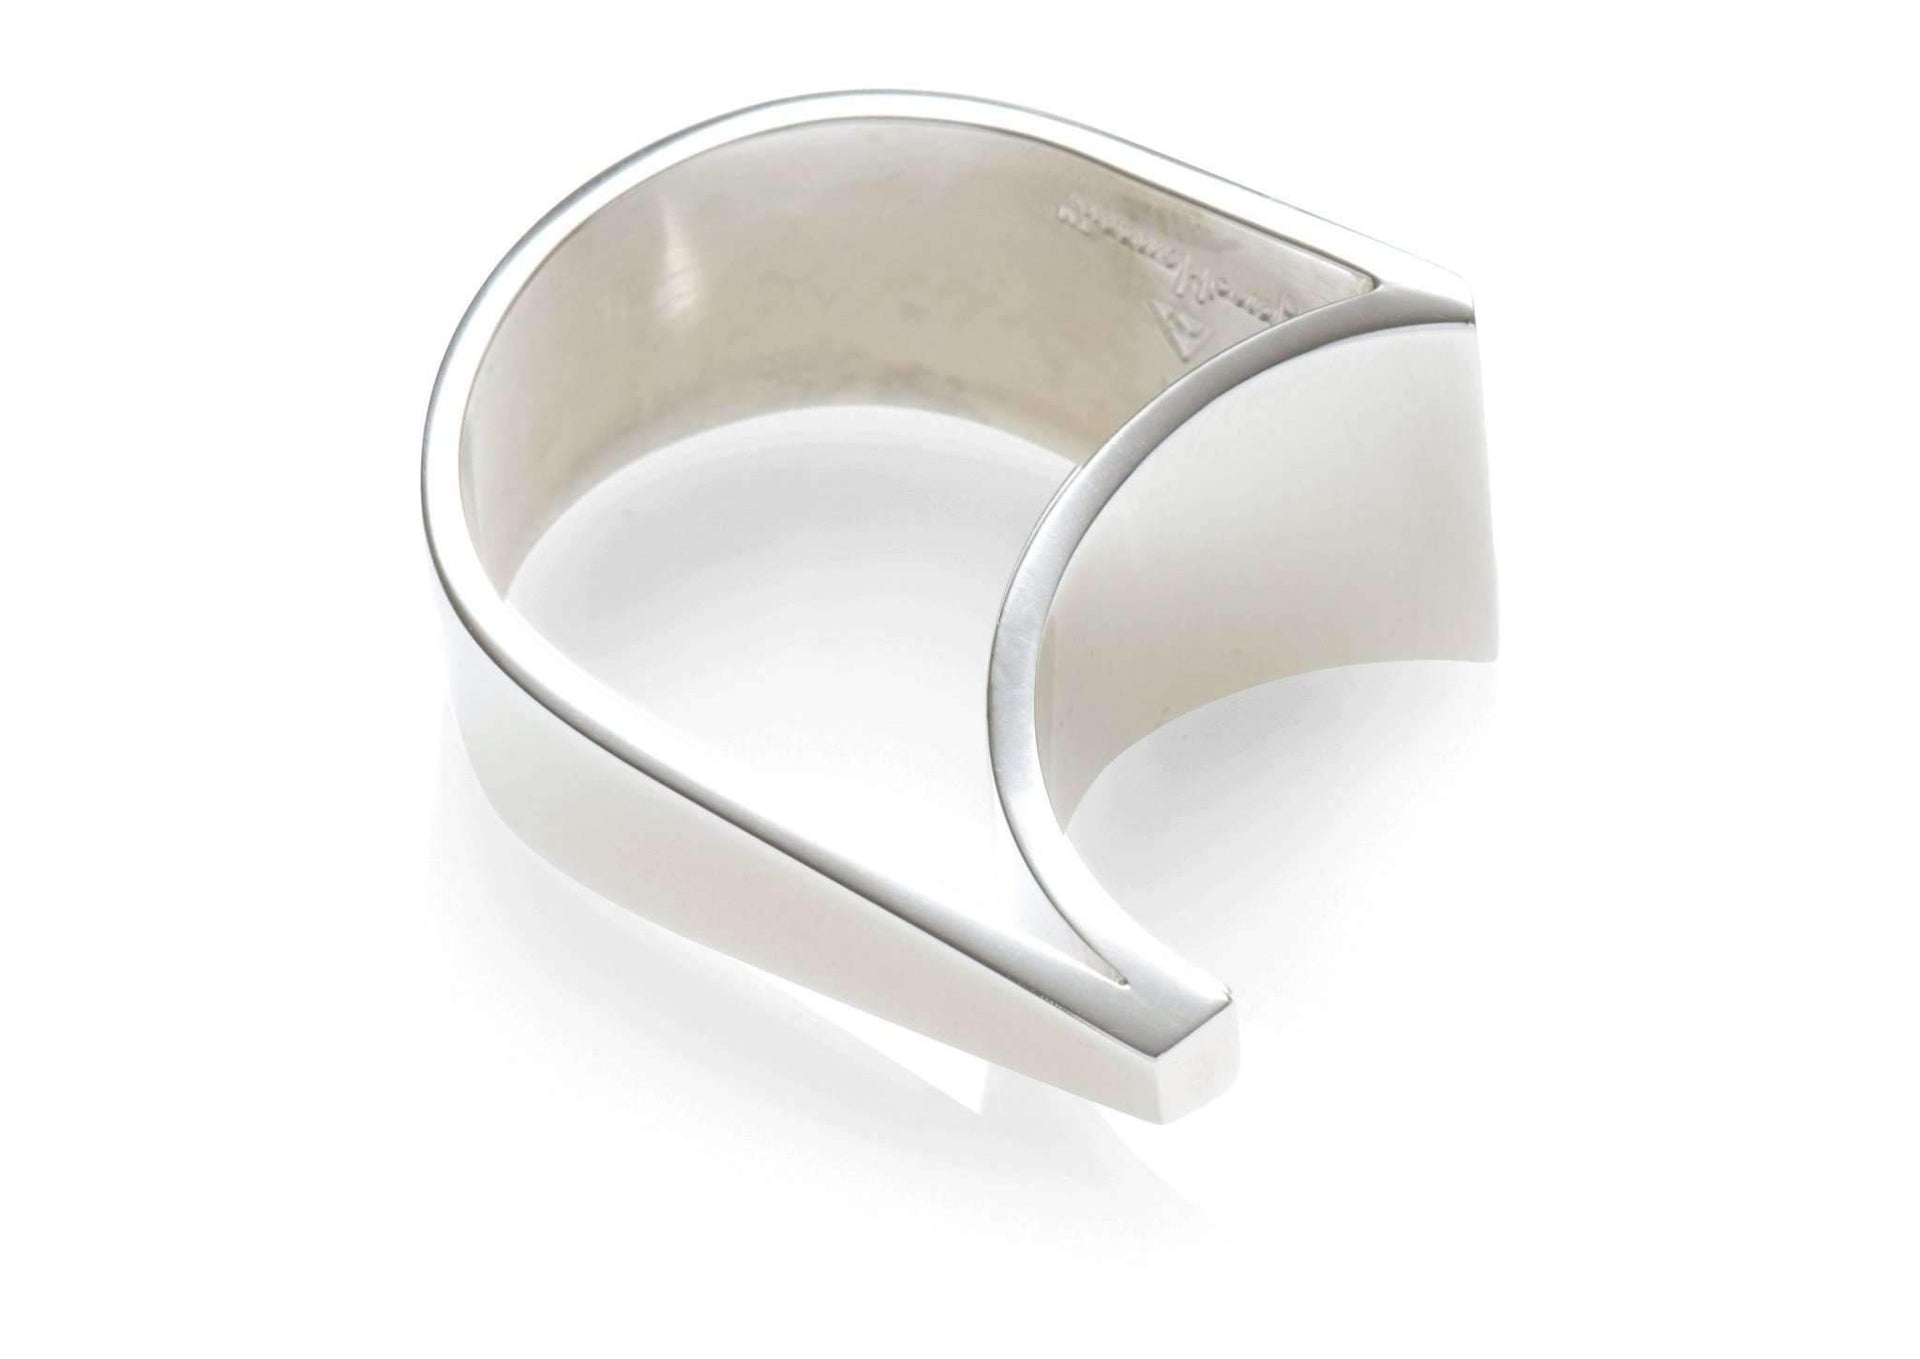 2008 Foundation Release Sterling Silver Asymmetrical Ring   - Jens Hansen - 1